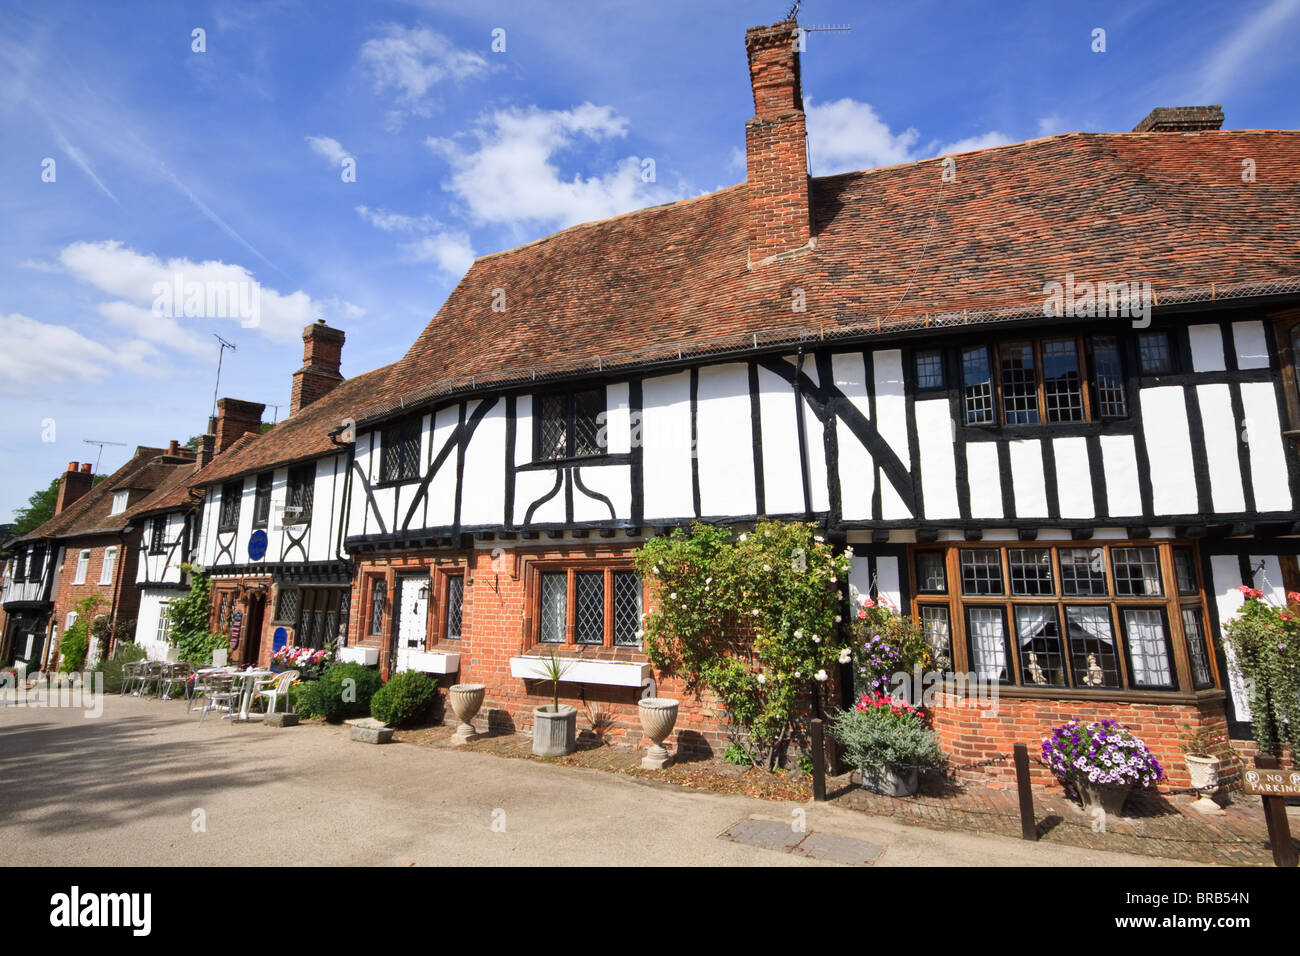 Timber Framed Cottages in Chilham, Kent - Stock Image